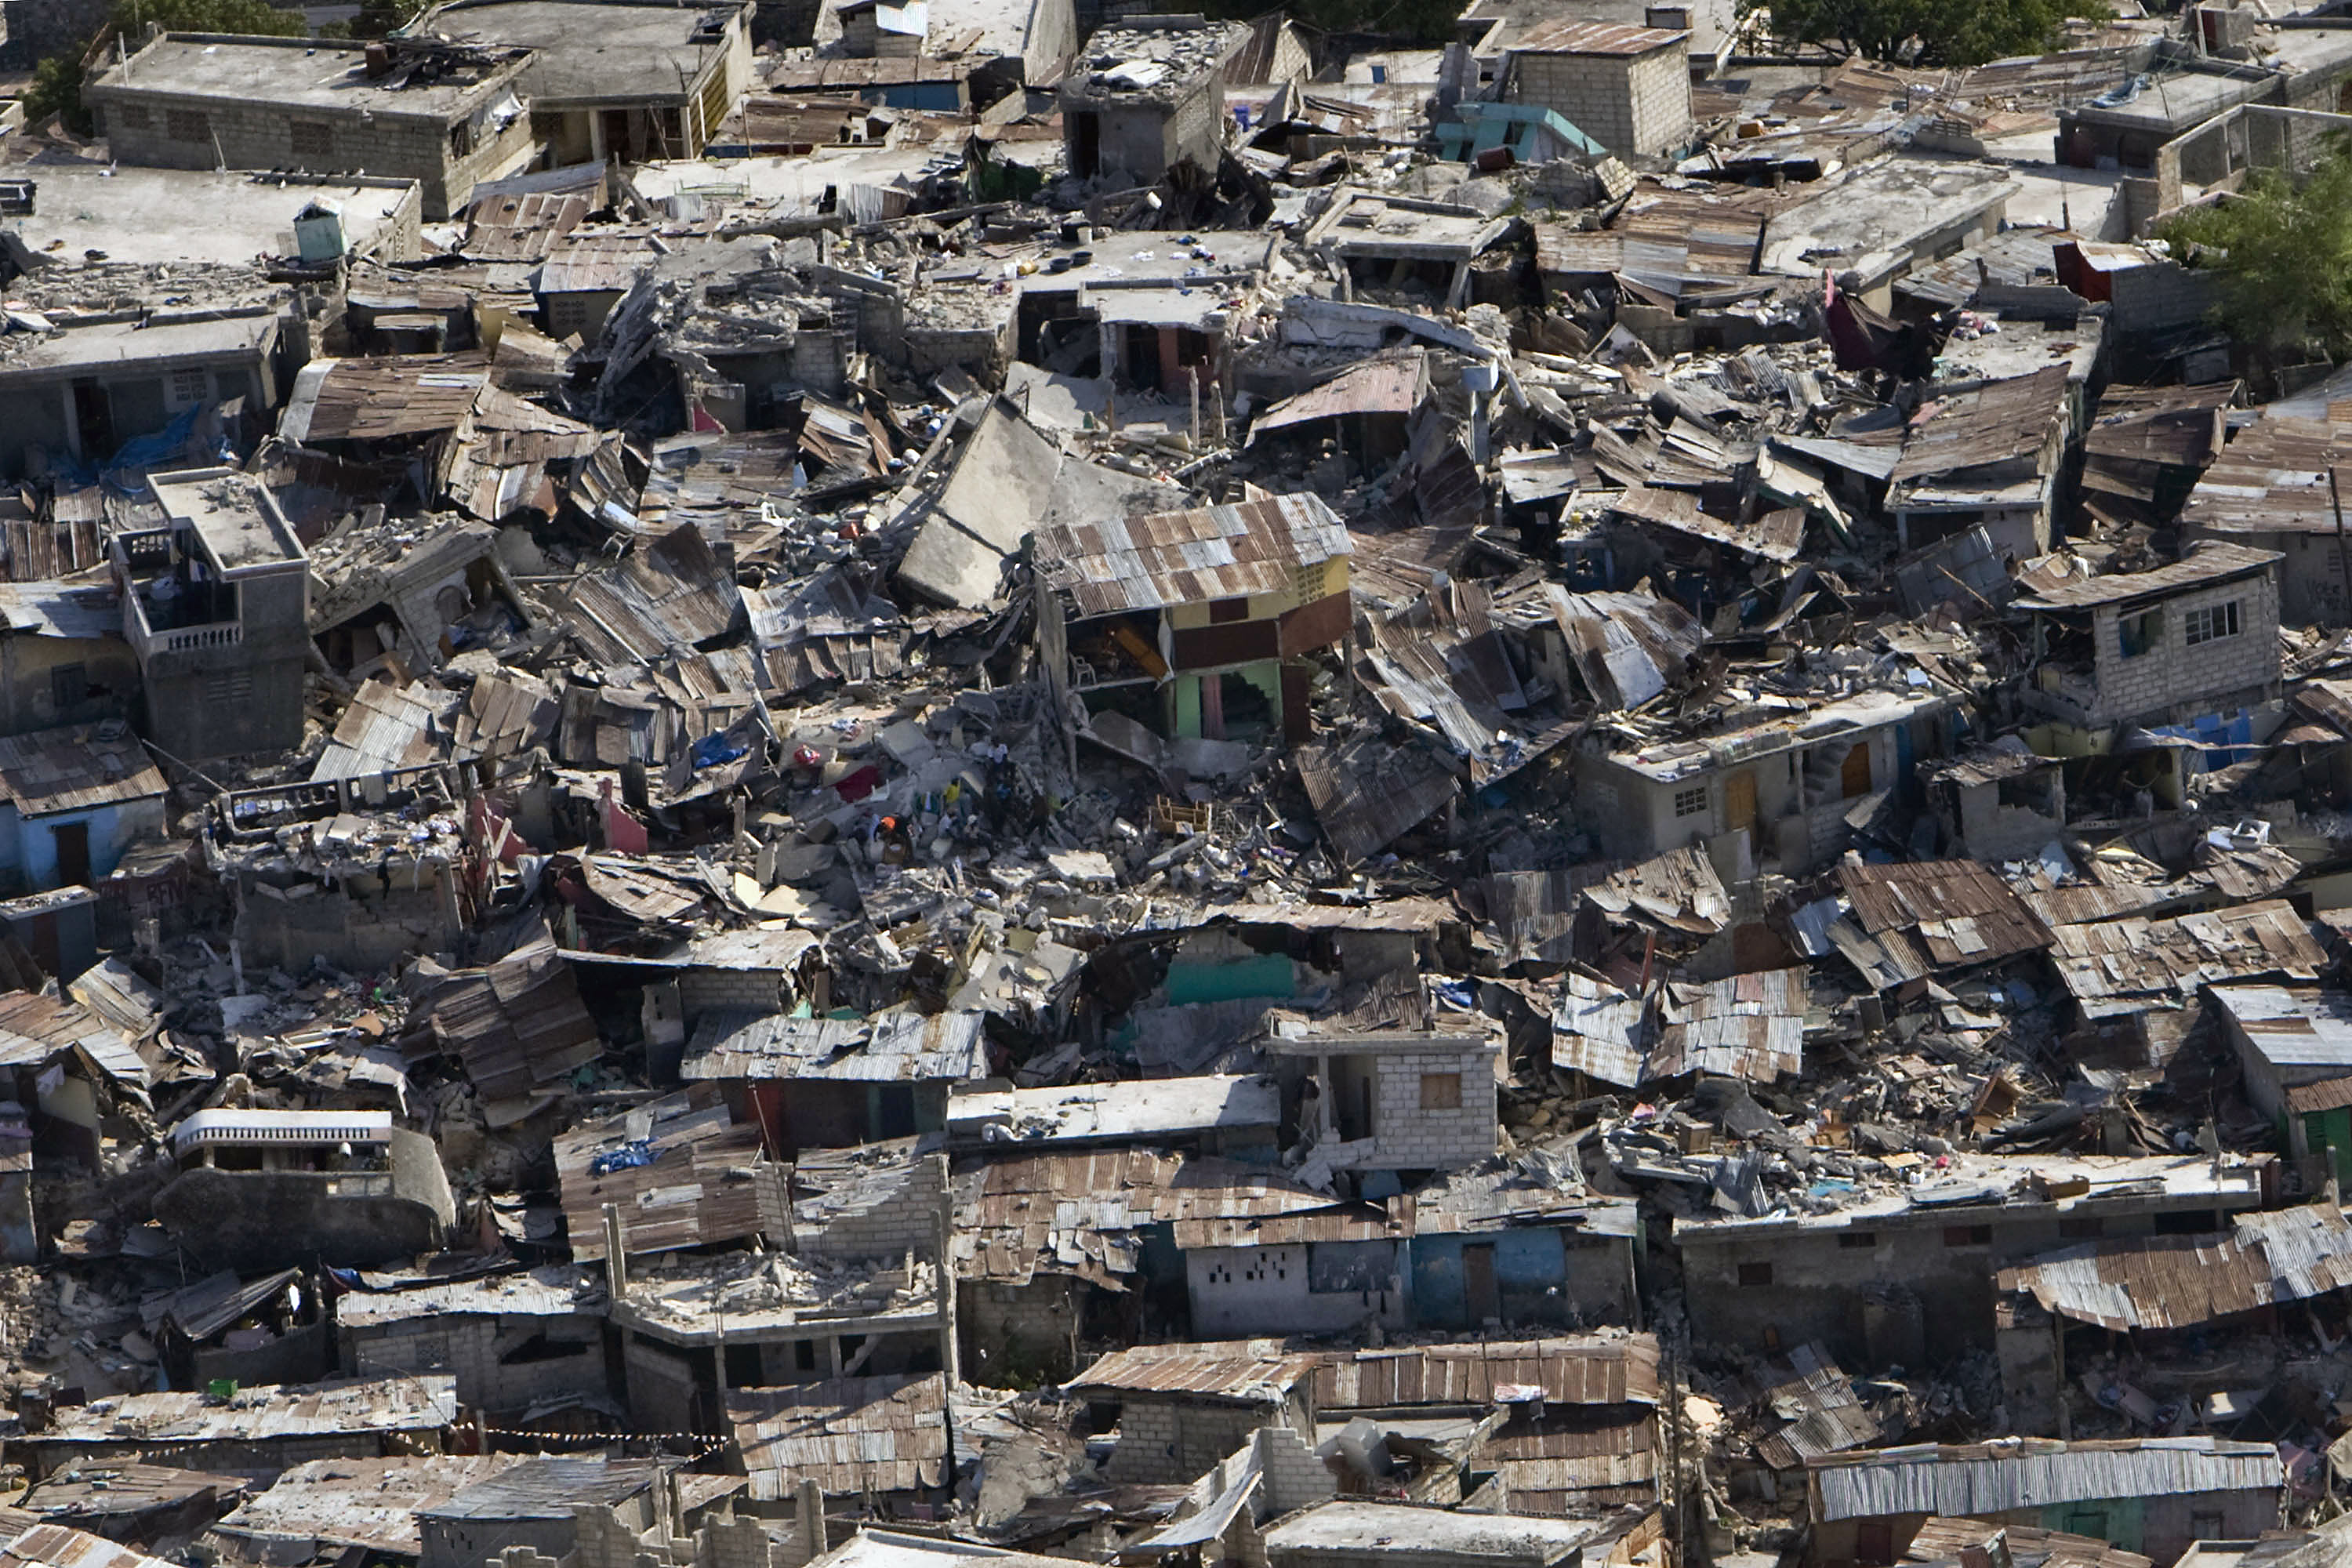 Caption: Haiti, 2010 earthquake damage